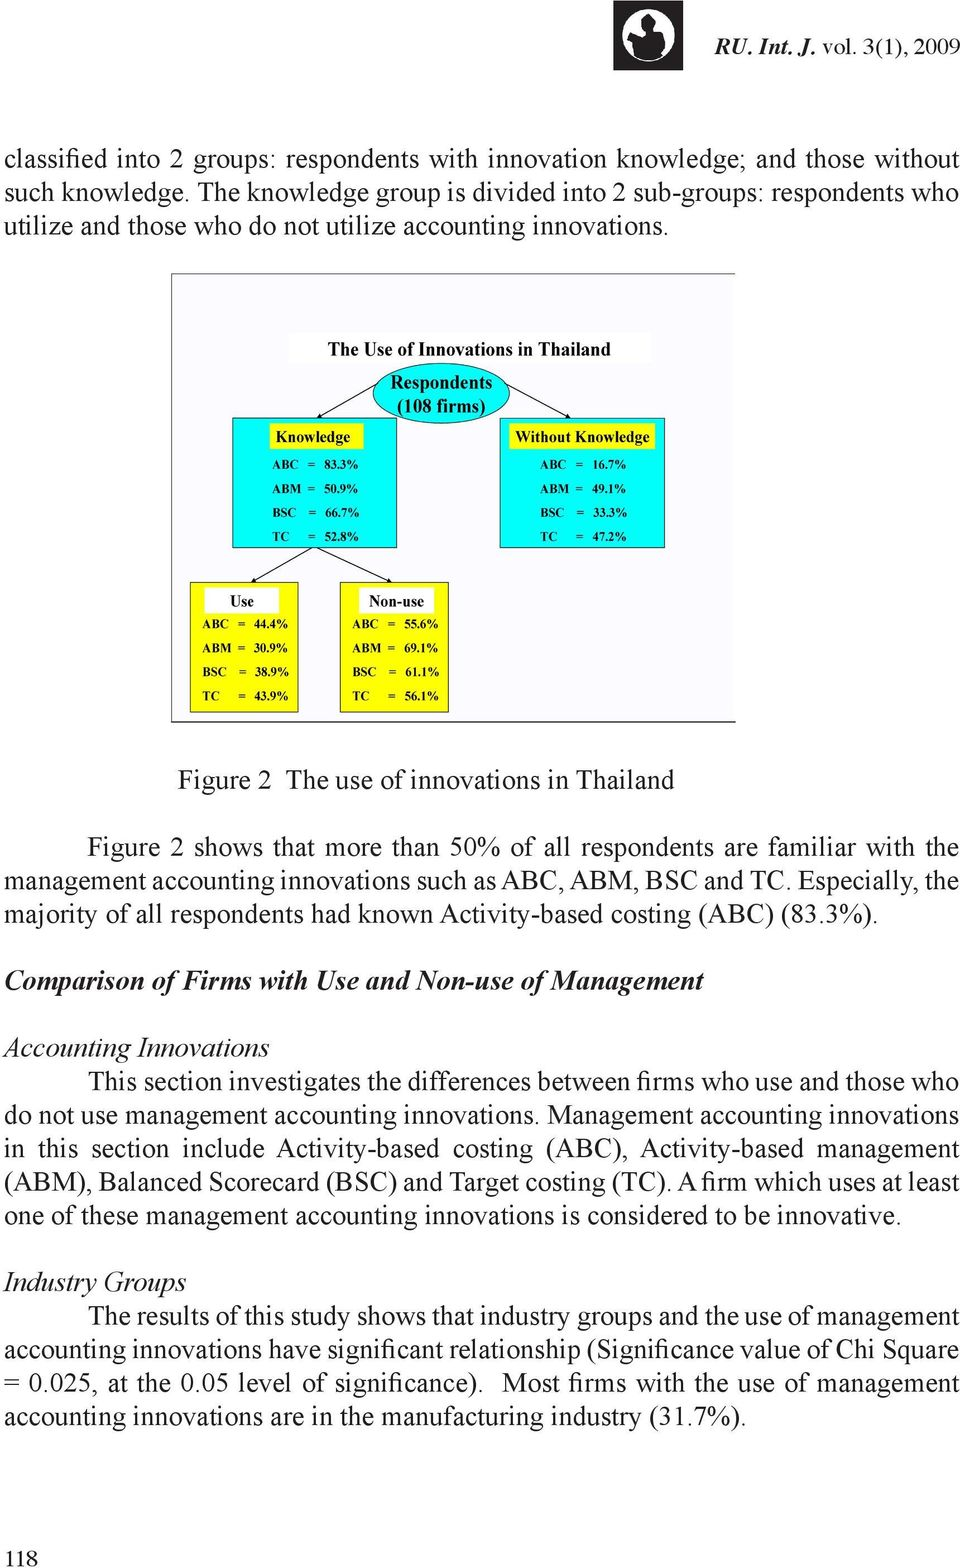 Figure 2 The use of innovations in Thailand Figure 2 shows that more than 50% of all respondents are familiar with the management accounting innovations such as ABC, ABM, BSC and TC.